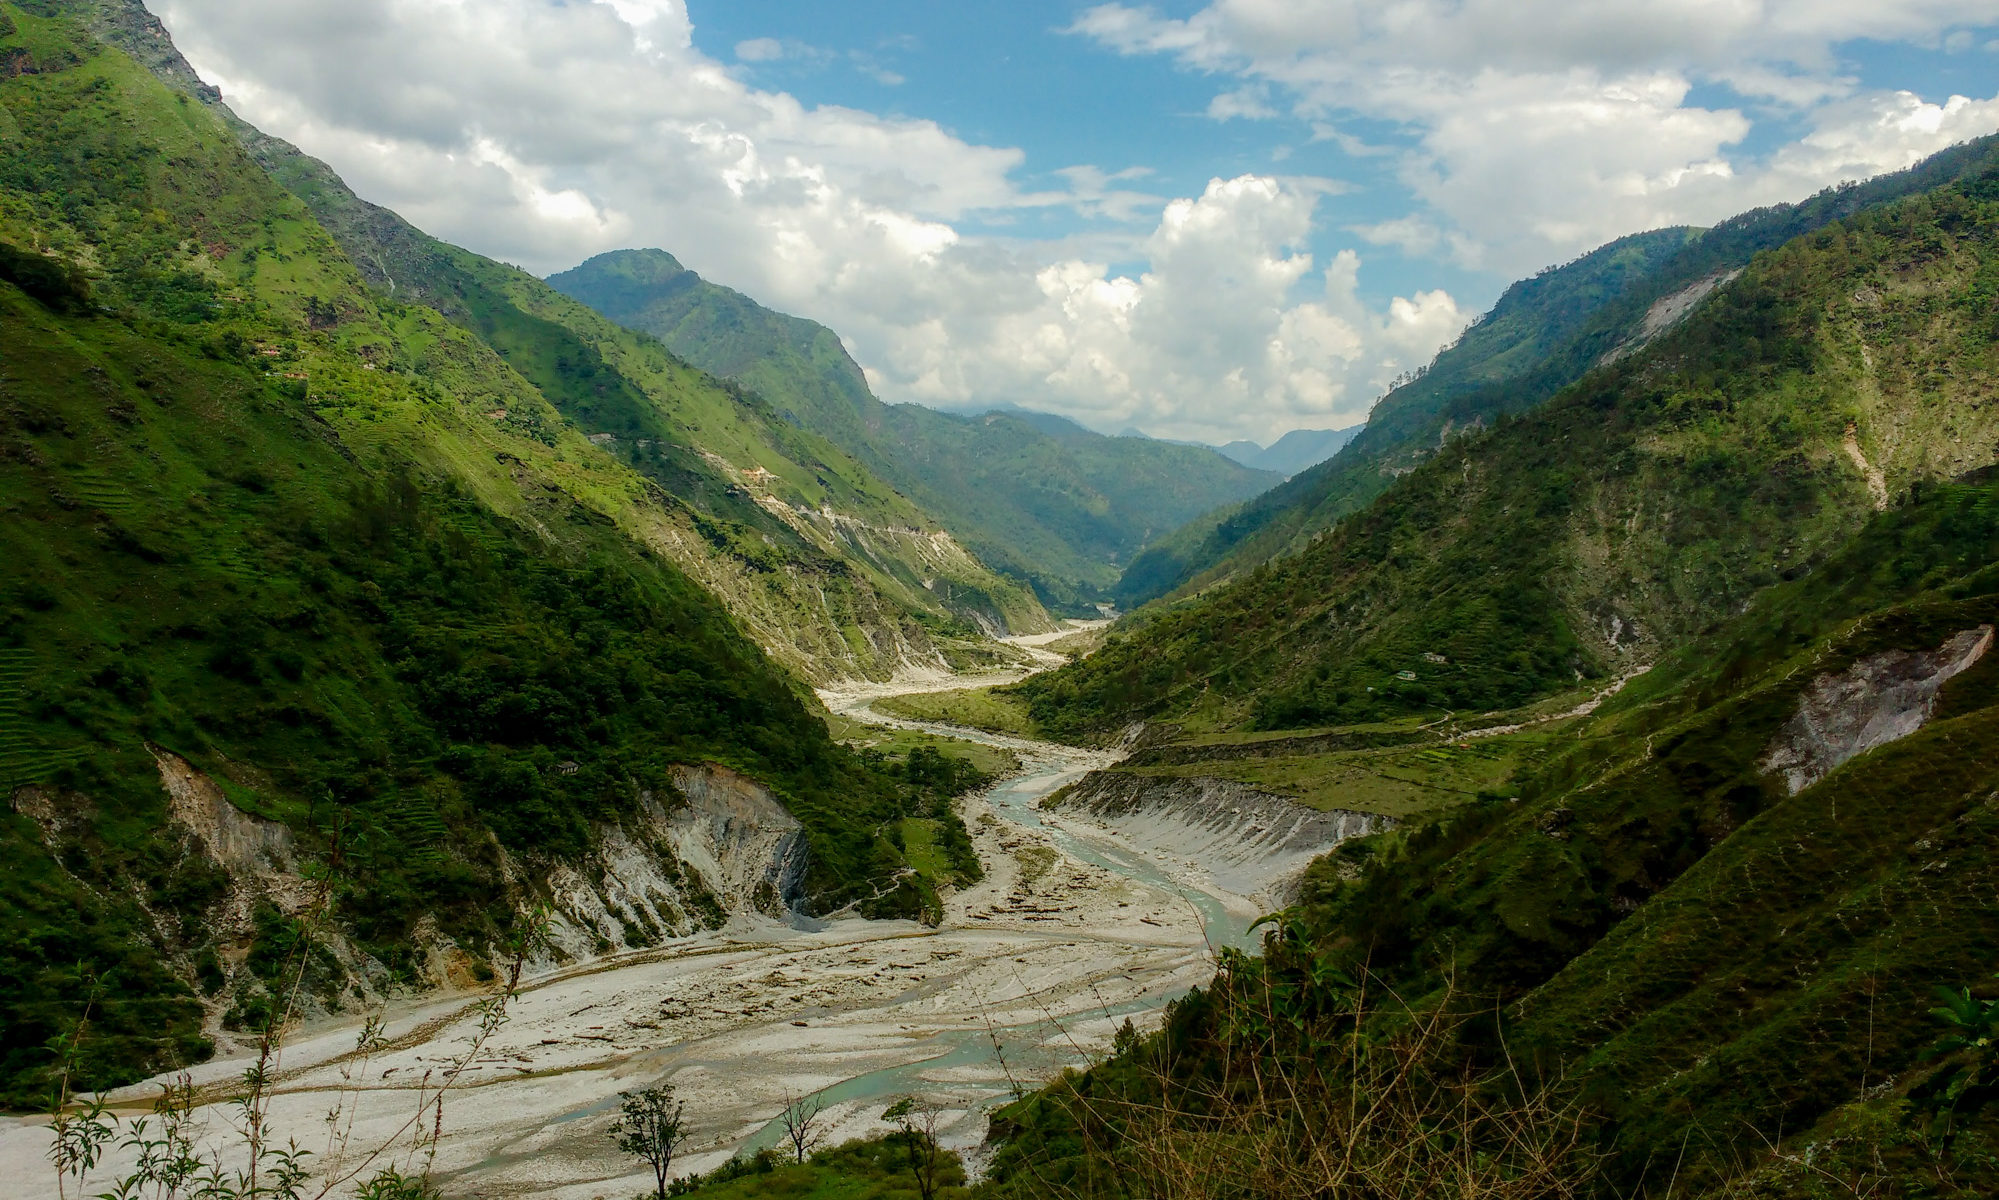 Glacial Lake Outburst Flood (GLOF) Drowns Villages Along Its Path In The Central Himalayas